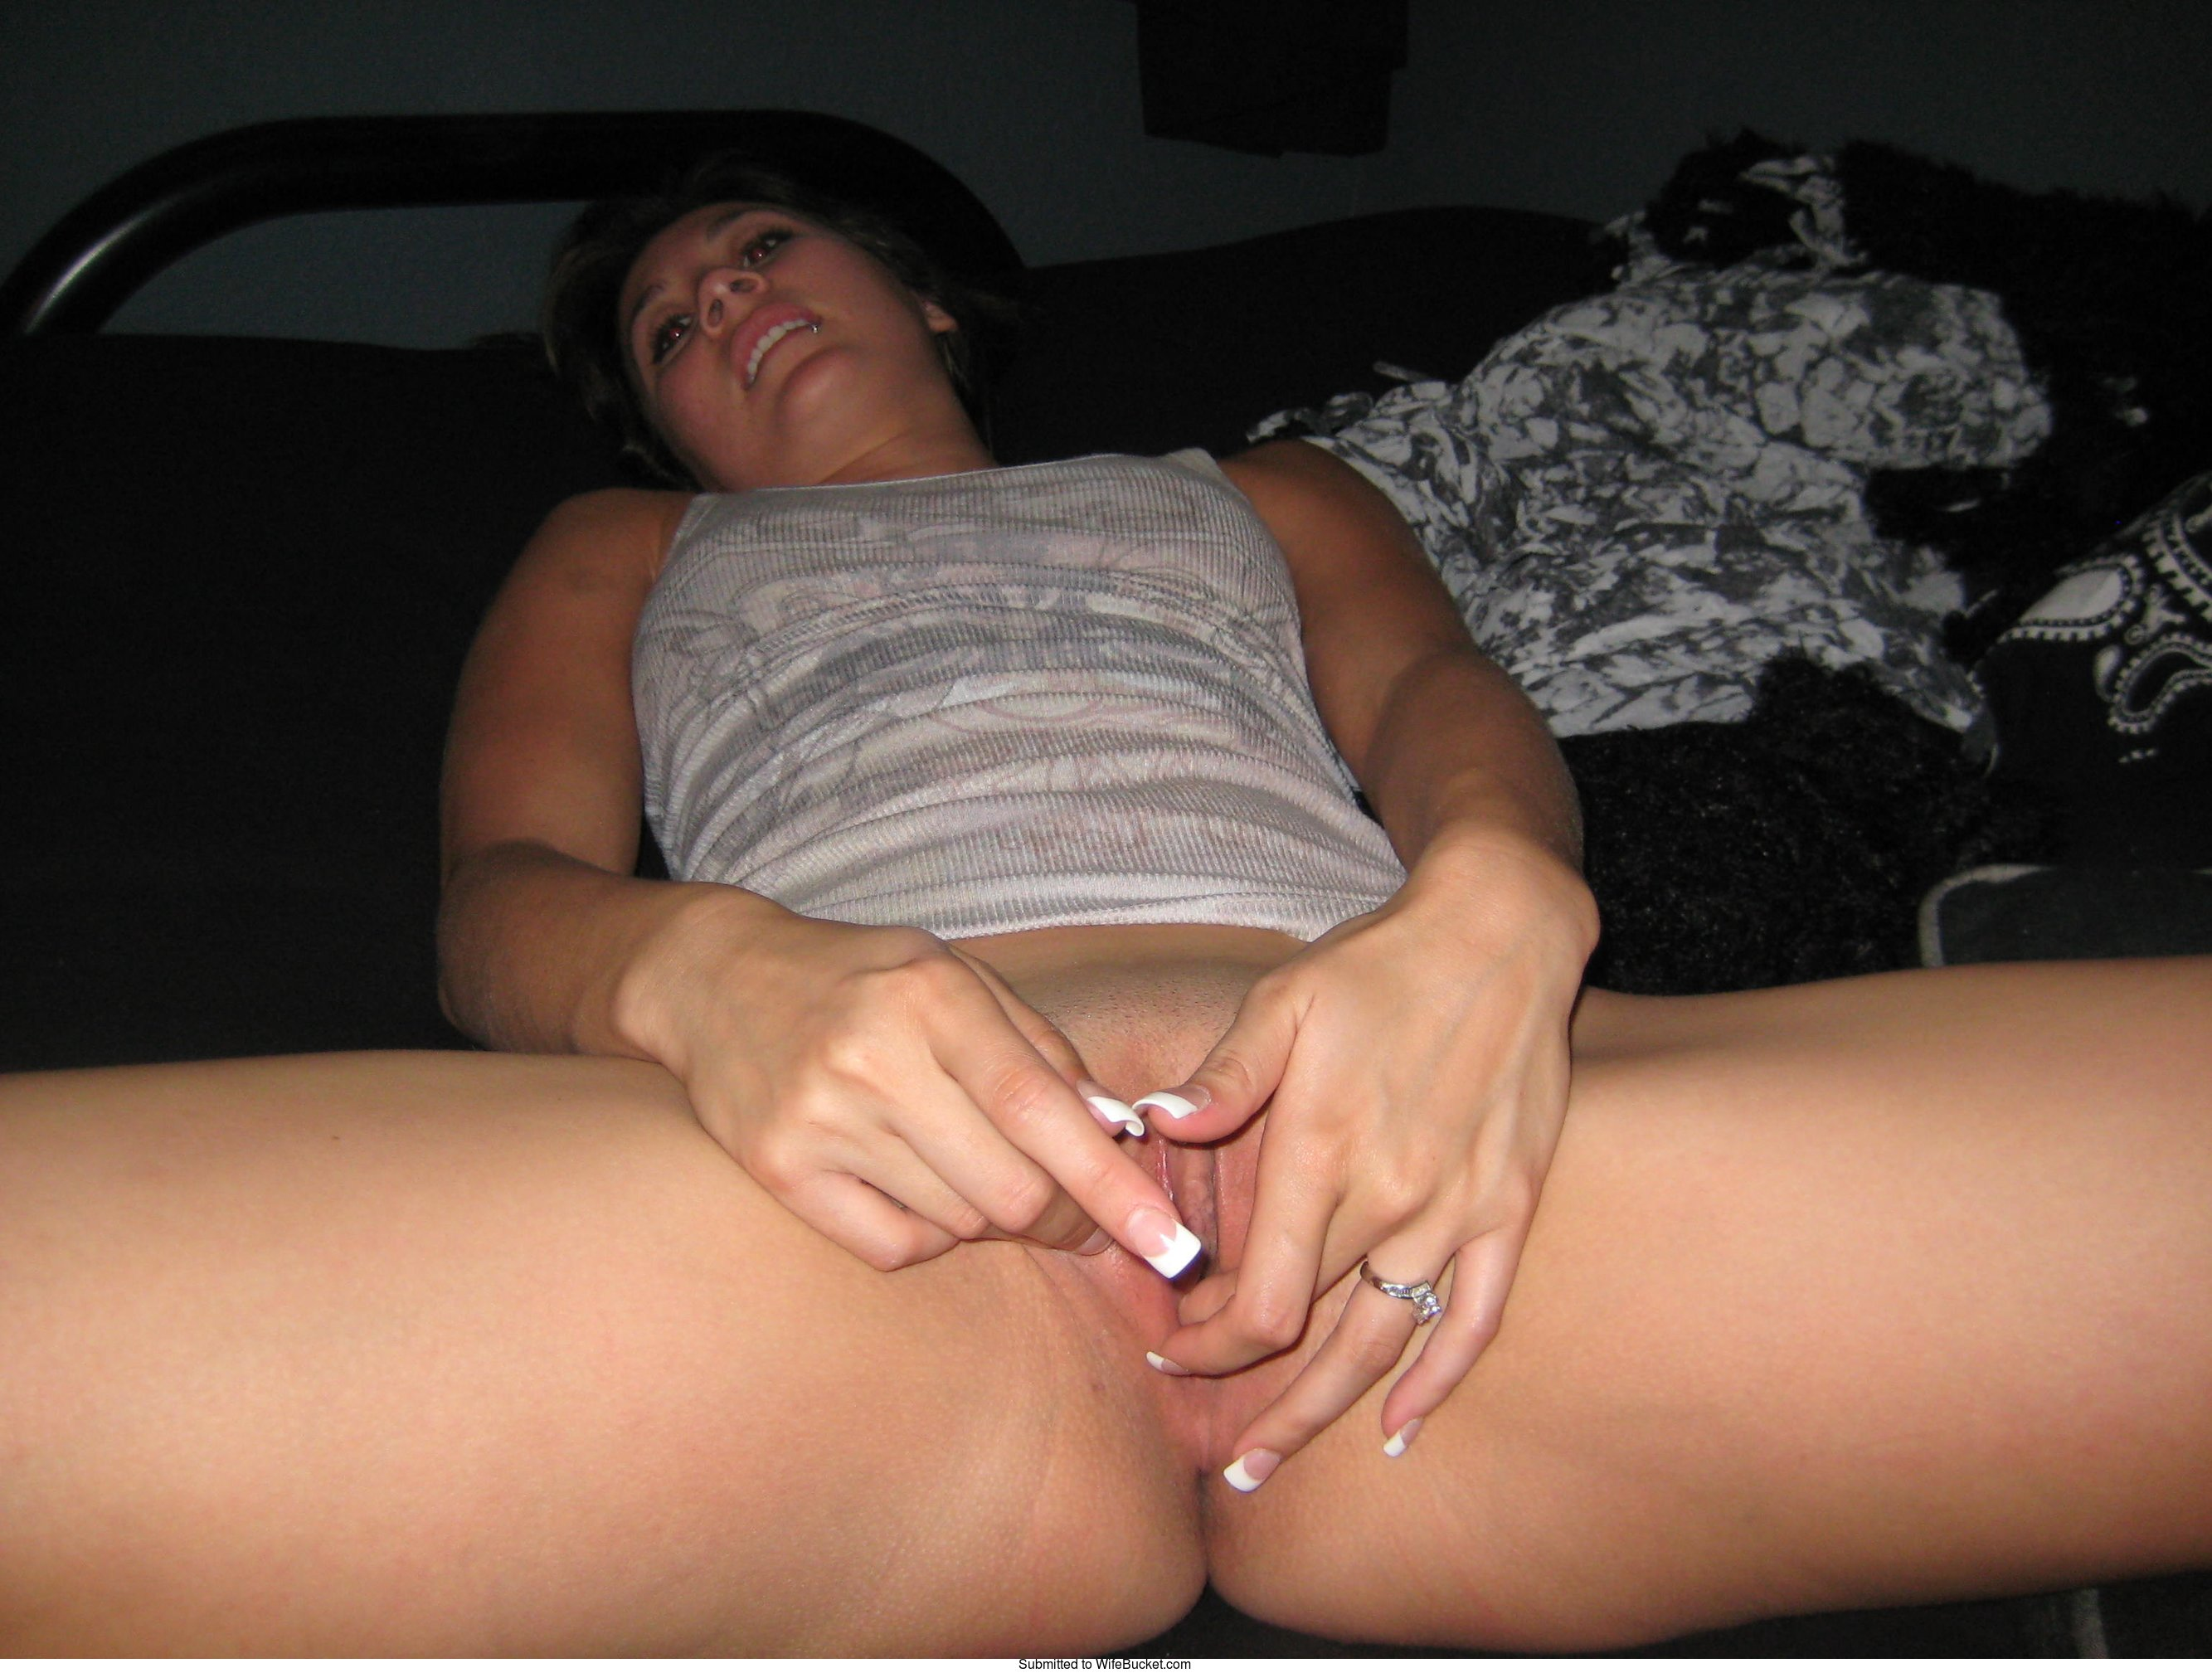 Wifebucket  Porn Pics From Your Vacation - What Wonderful -4725